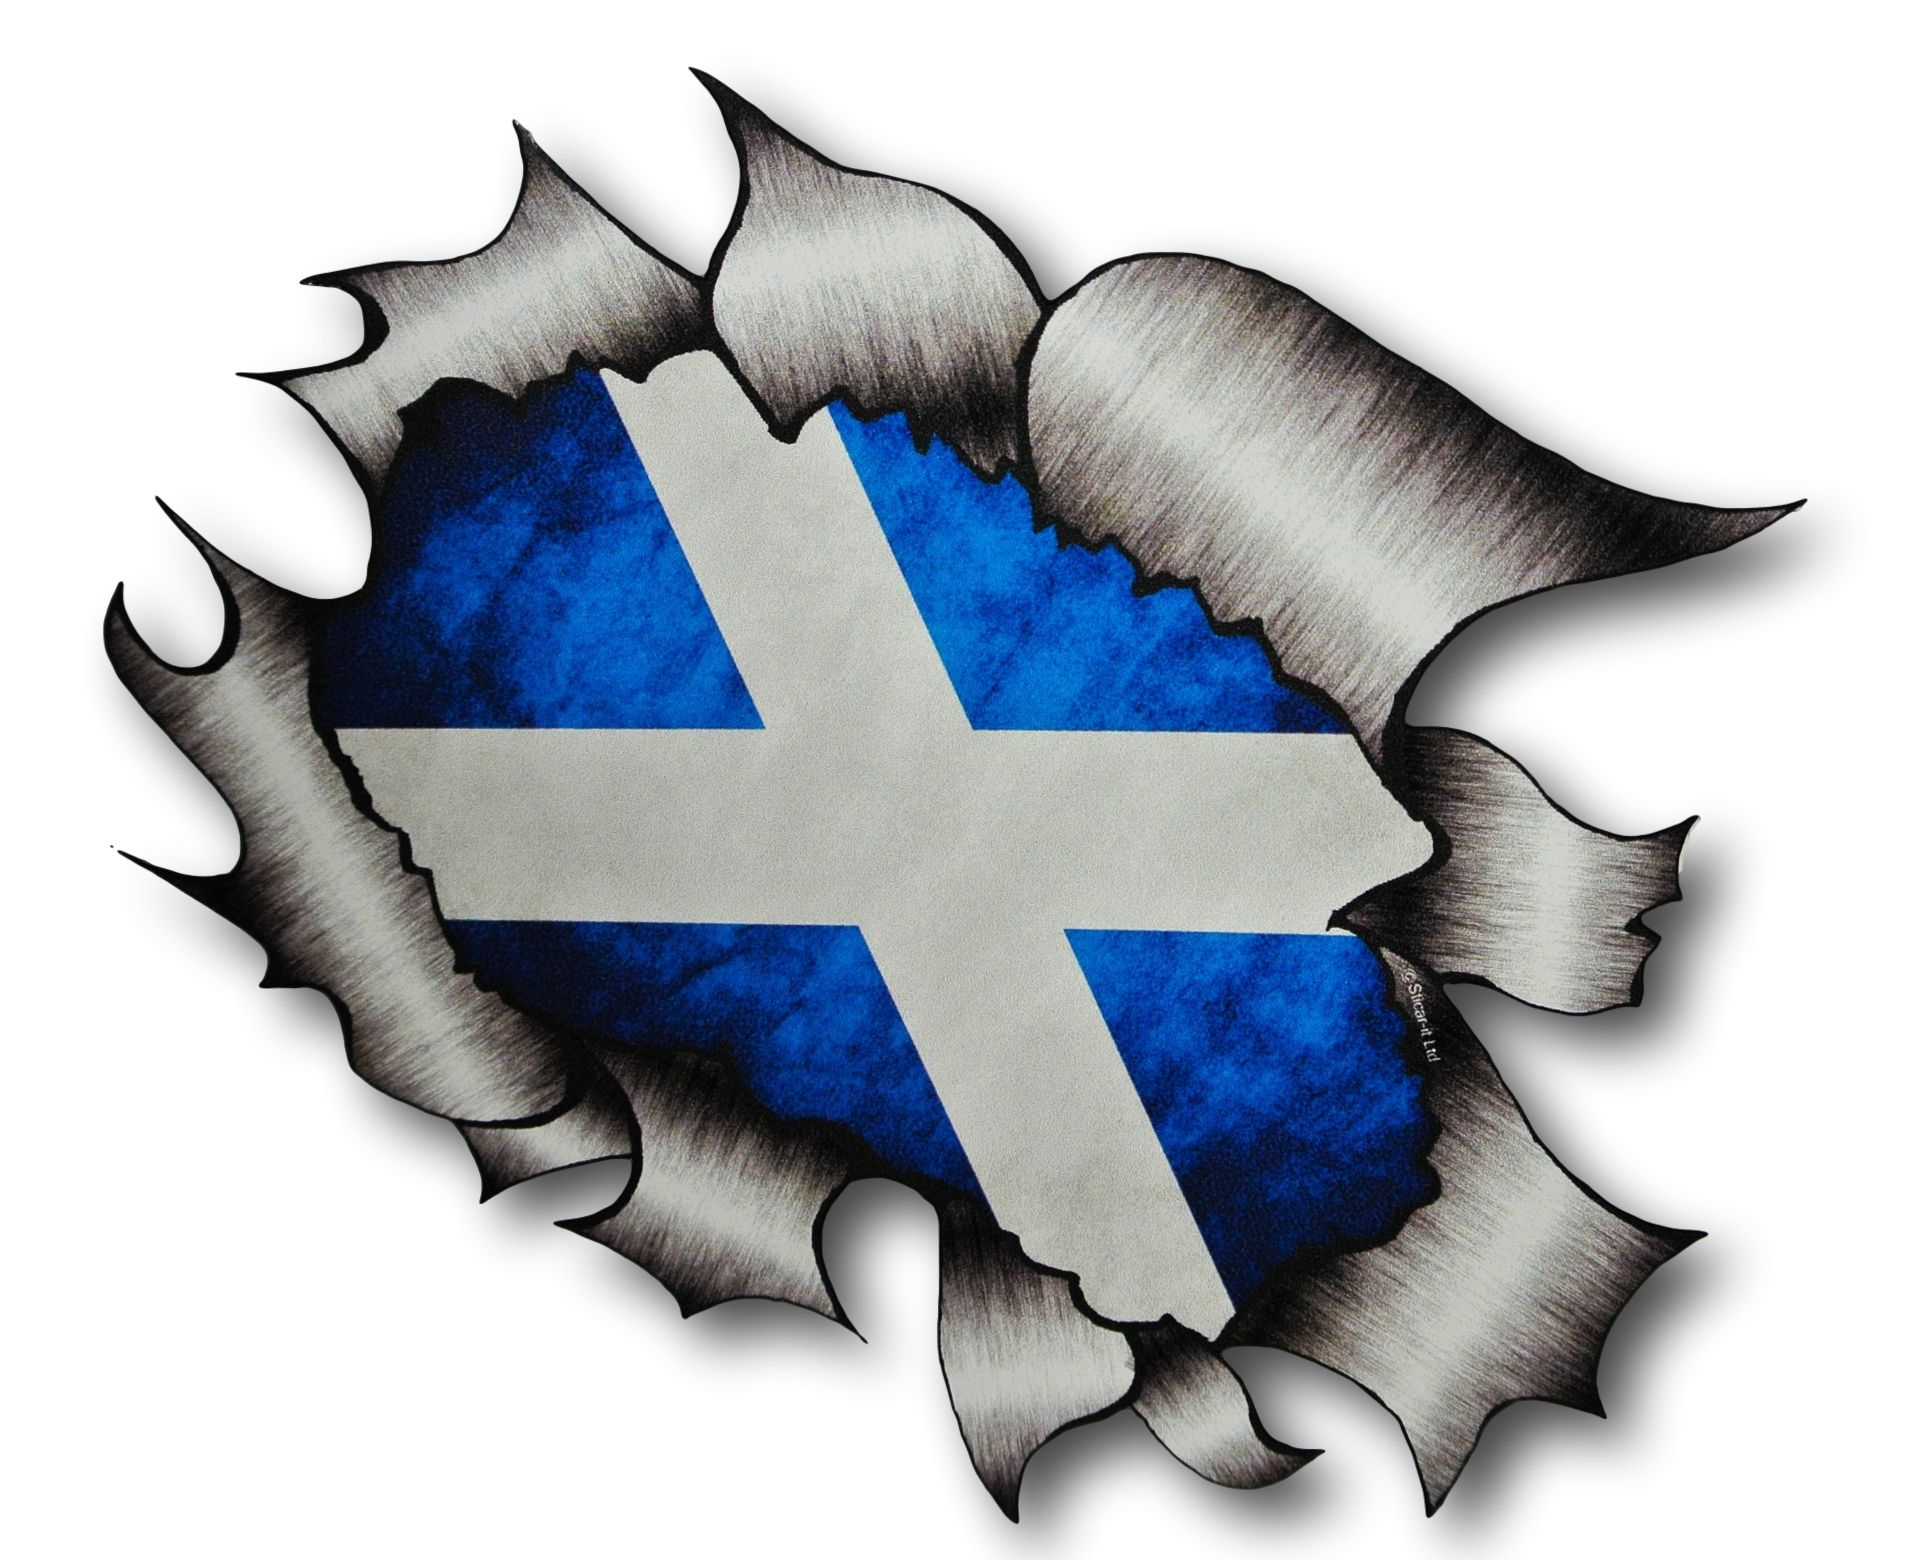 Large Ripped Torn Metal Design With Scotland Scottish